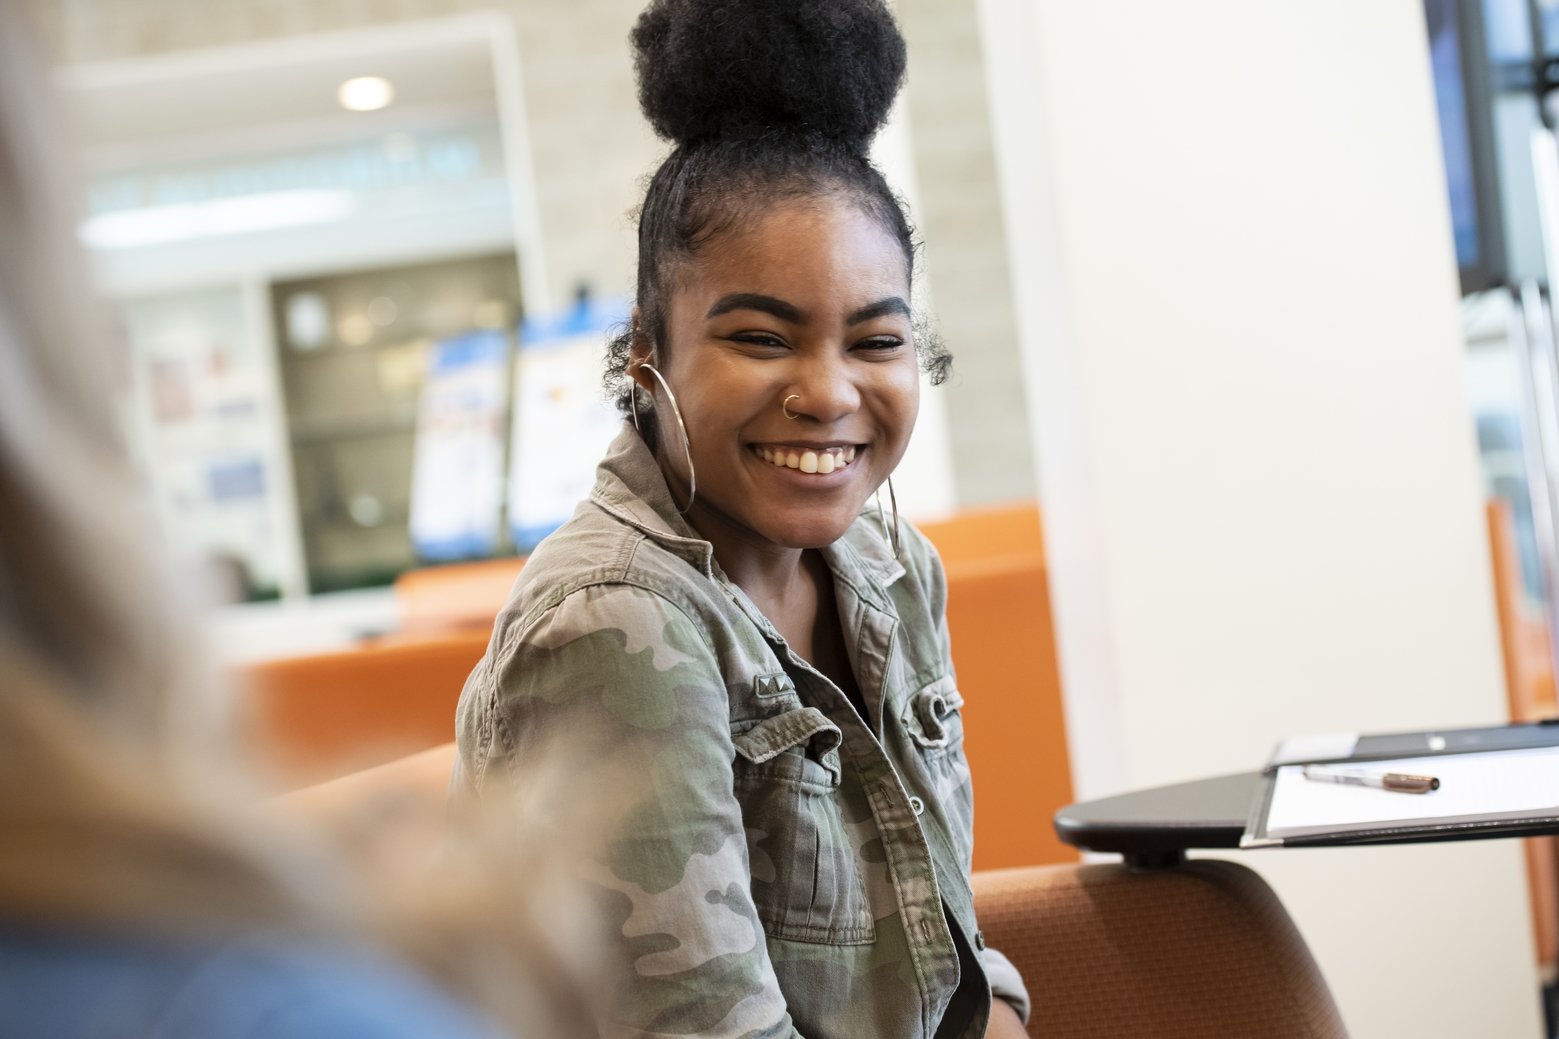 Student smiling during conversation.